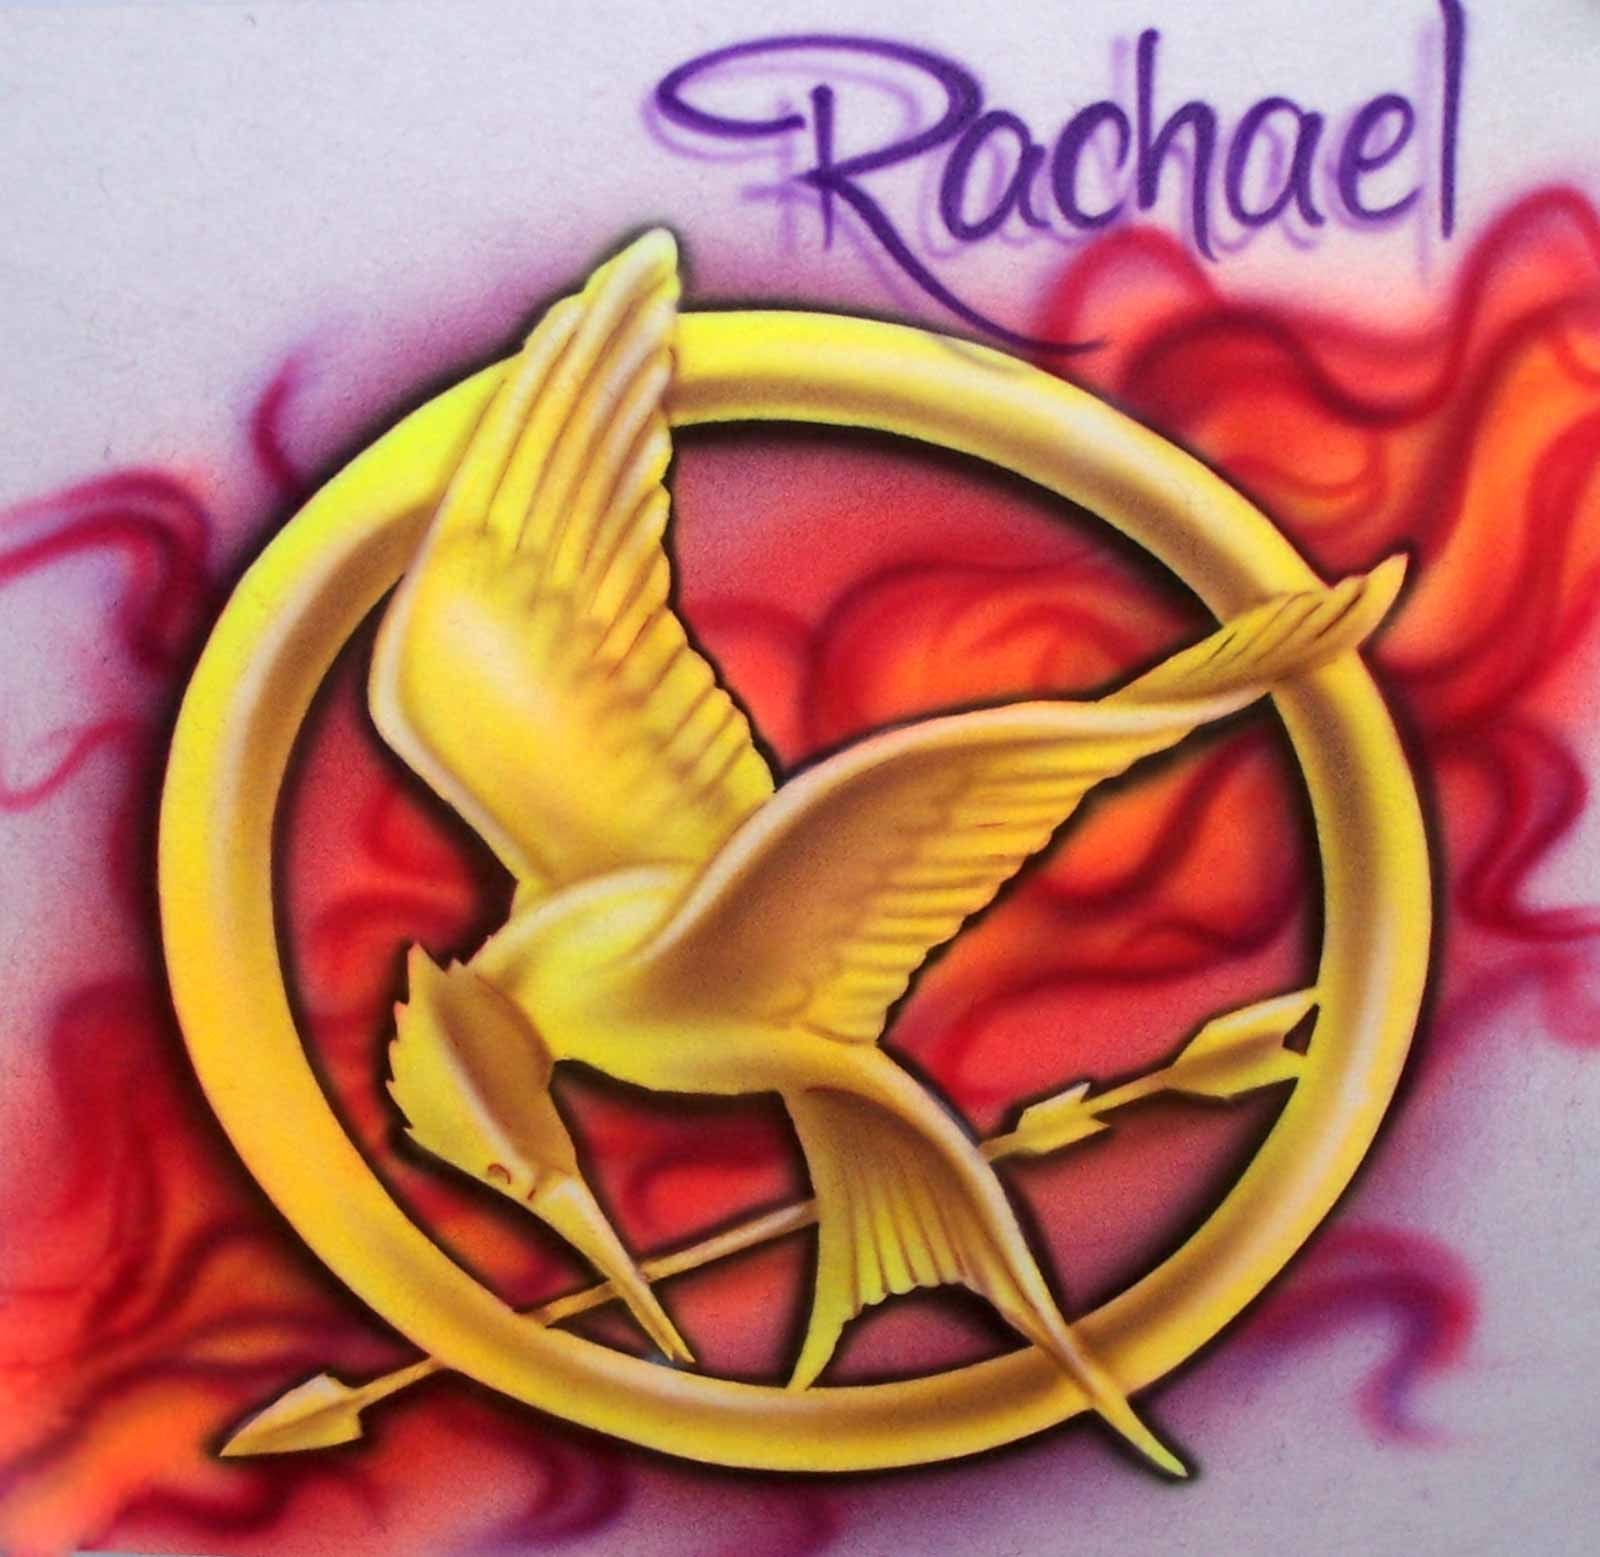 Personalized Hunger Games Flaming Mockingjay Airbrushed T-Shirt or Sweatshirt